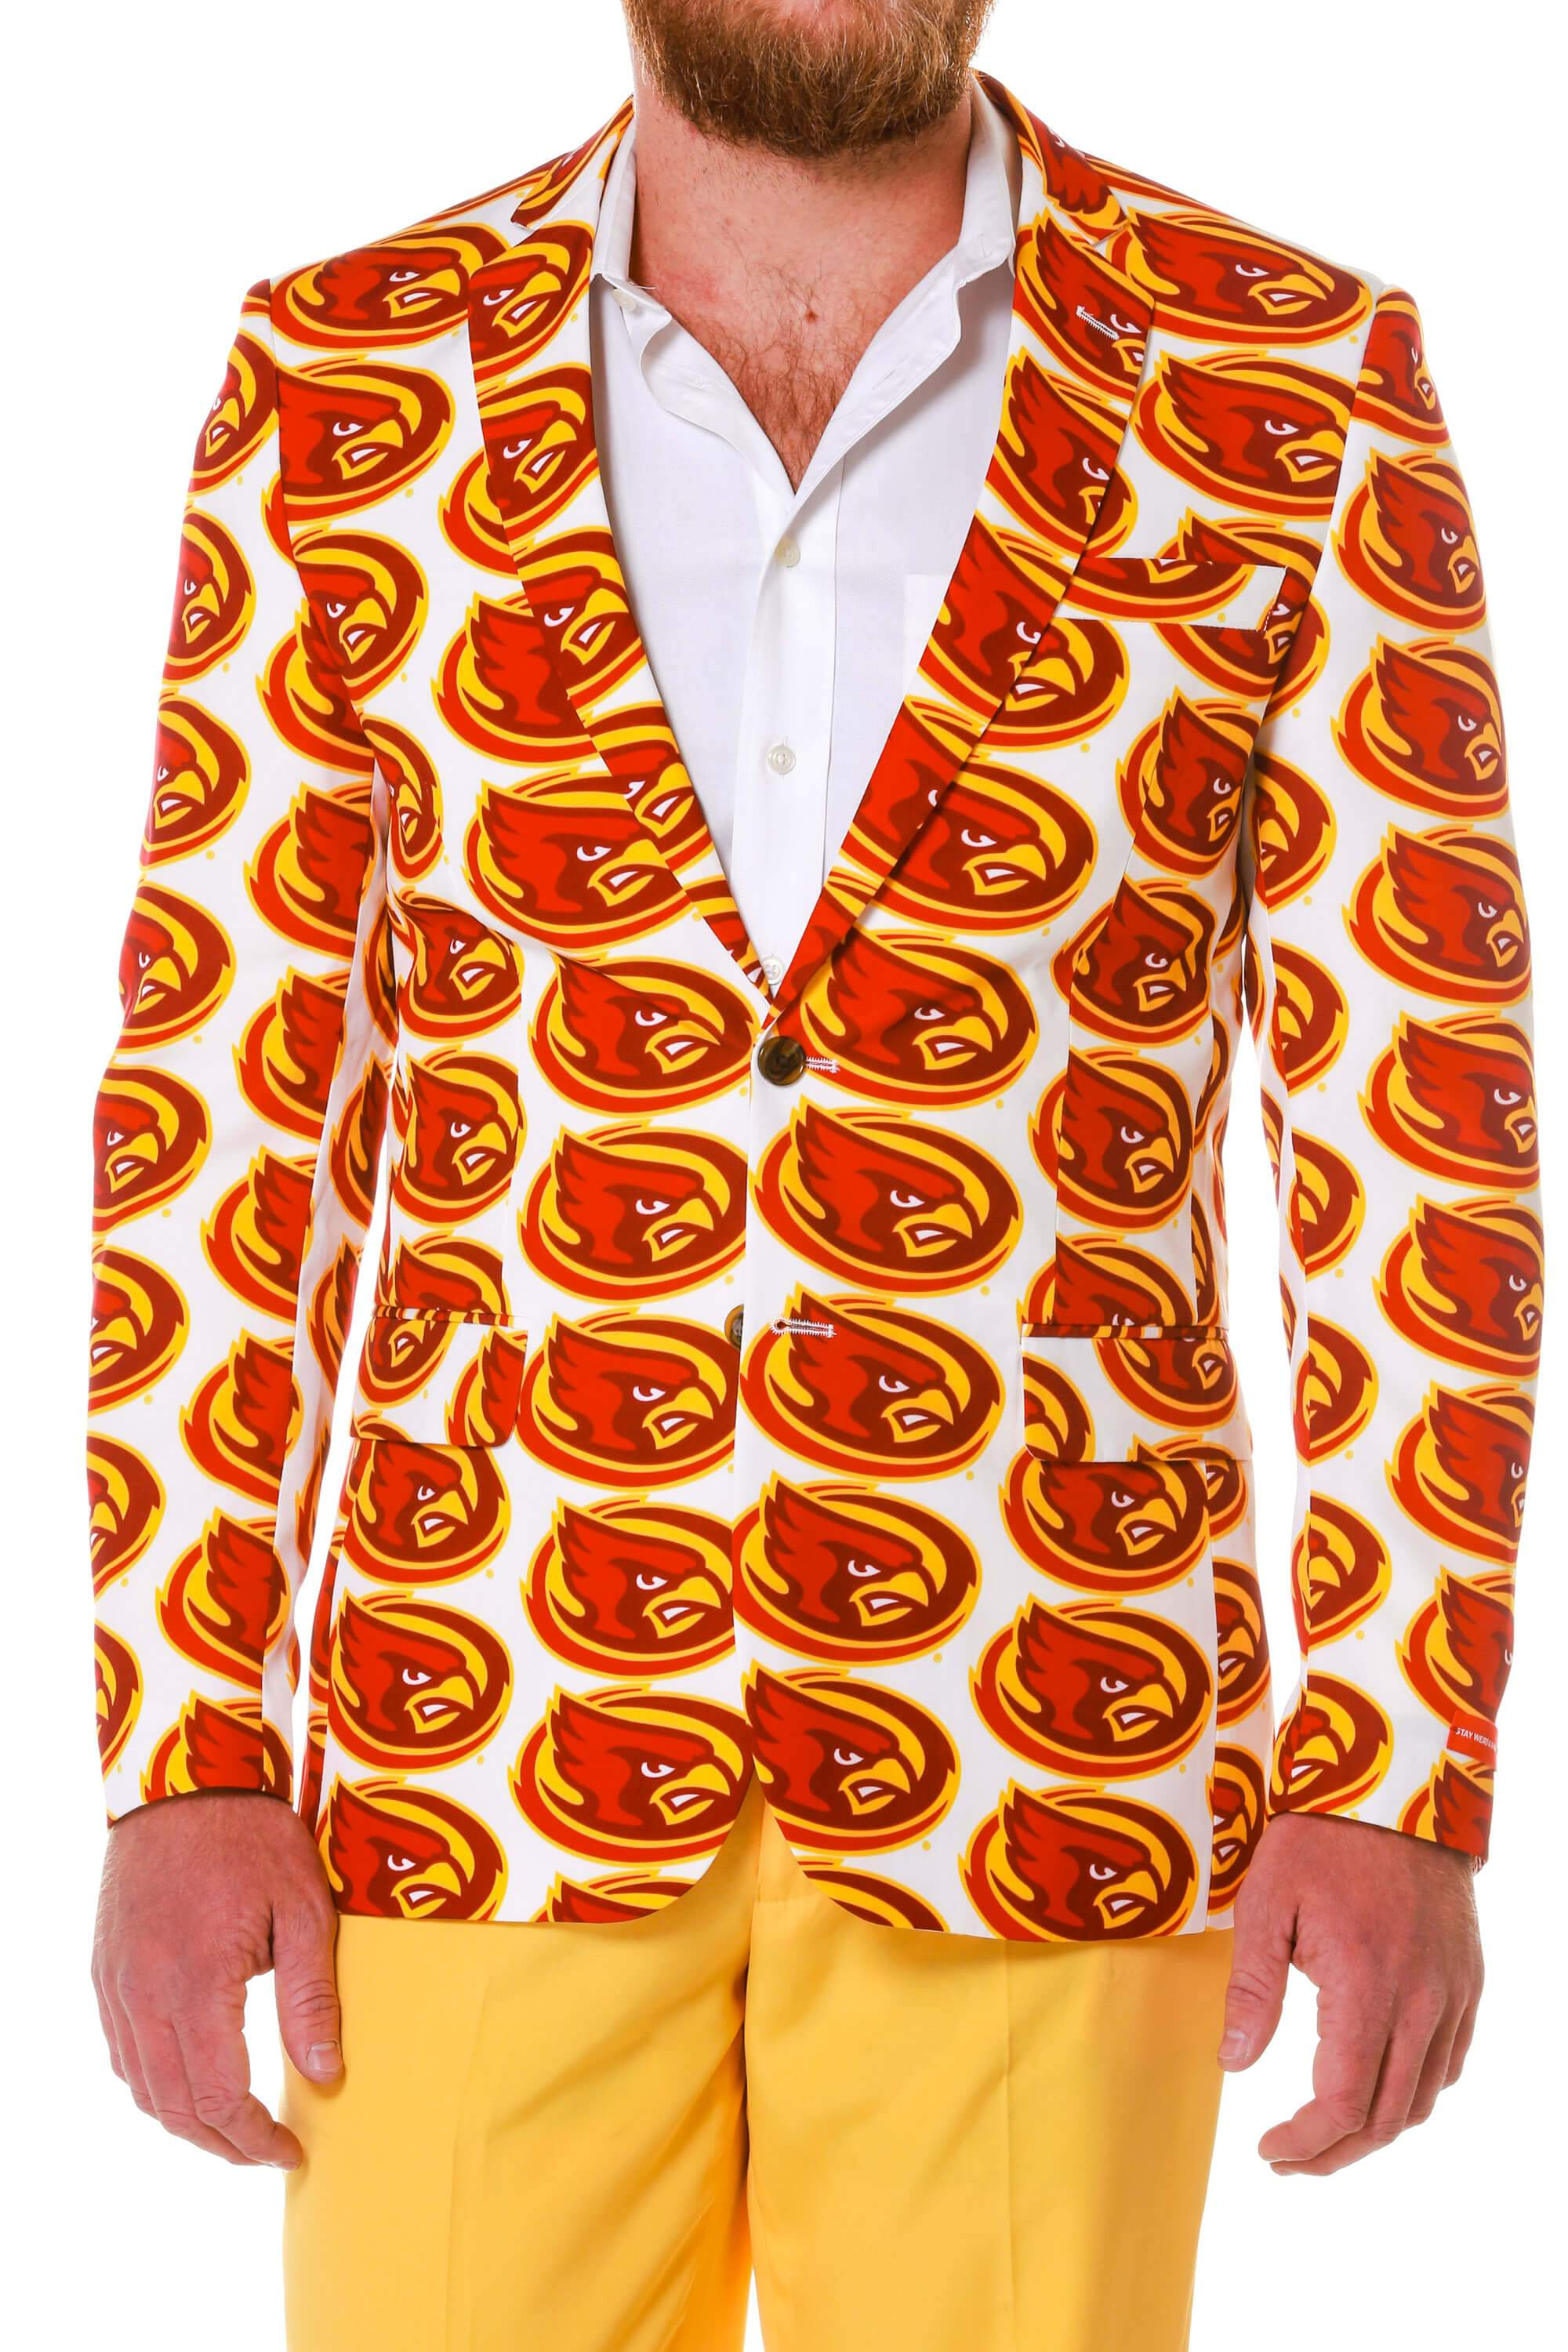 Iowa State mens party blazer